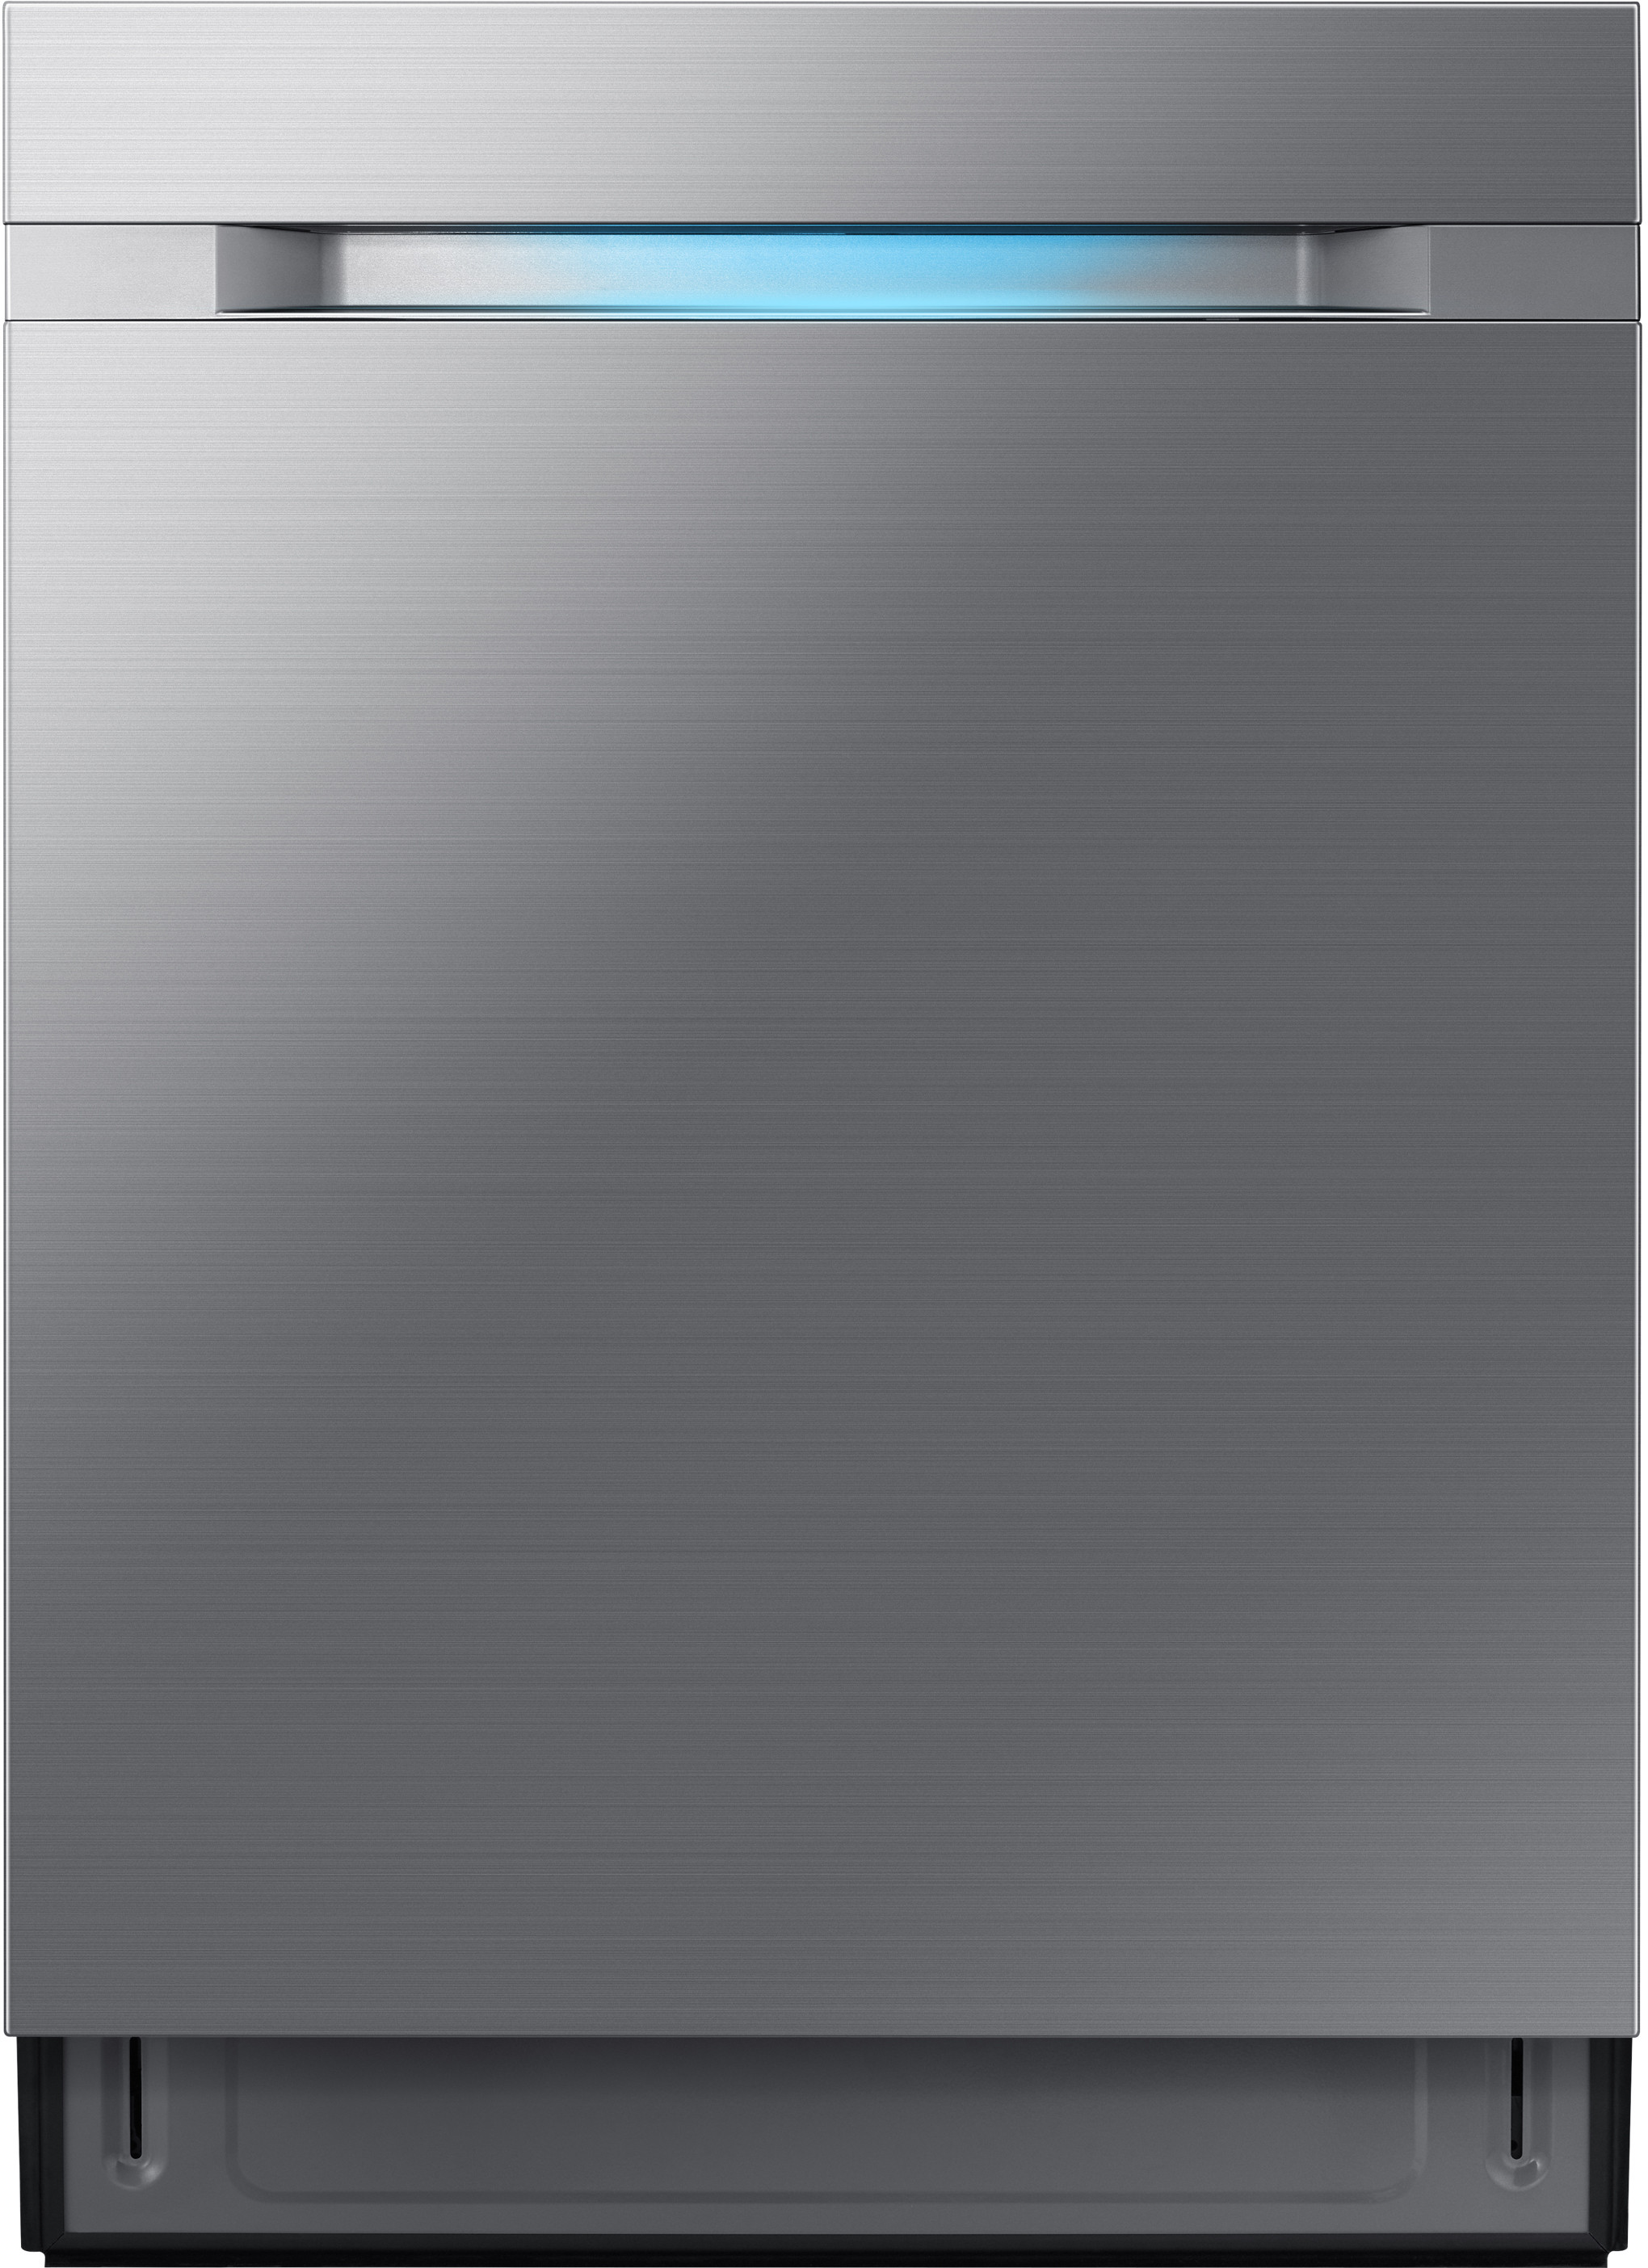 Samsung Dw80m9990us 24 Inch Fully Integrated Smart Dishwasher With 15 Place Settings 6 Wash Cycles Flextray Rack 38 Dba Silence Rating Zone Booster Autorelease Door Drying Express 60 Cycle And Energy Star Certified Stainless Steel